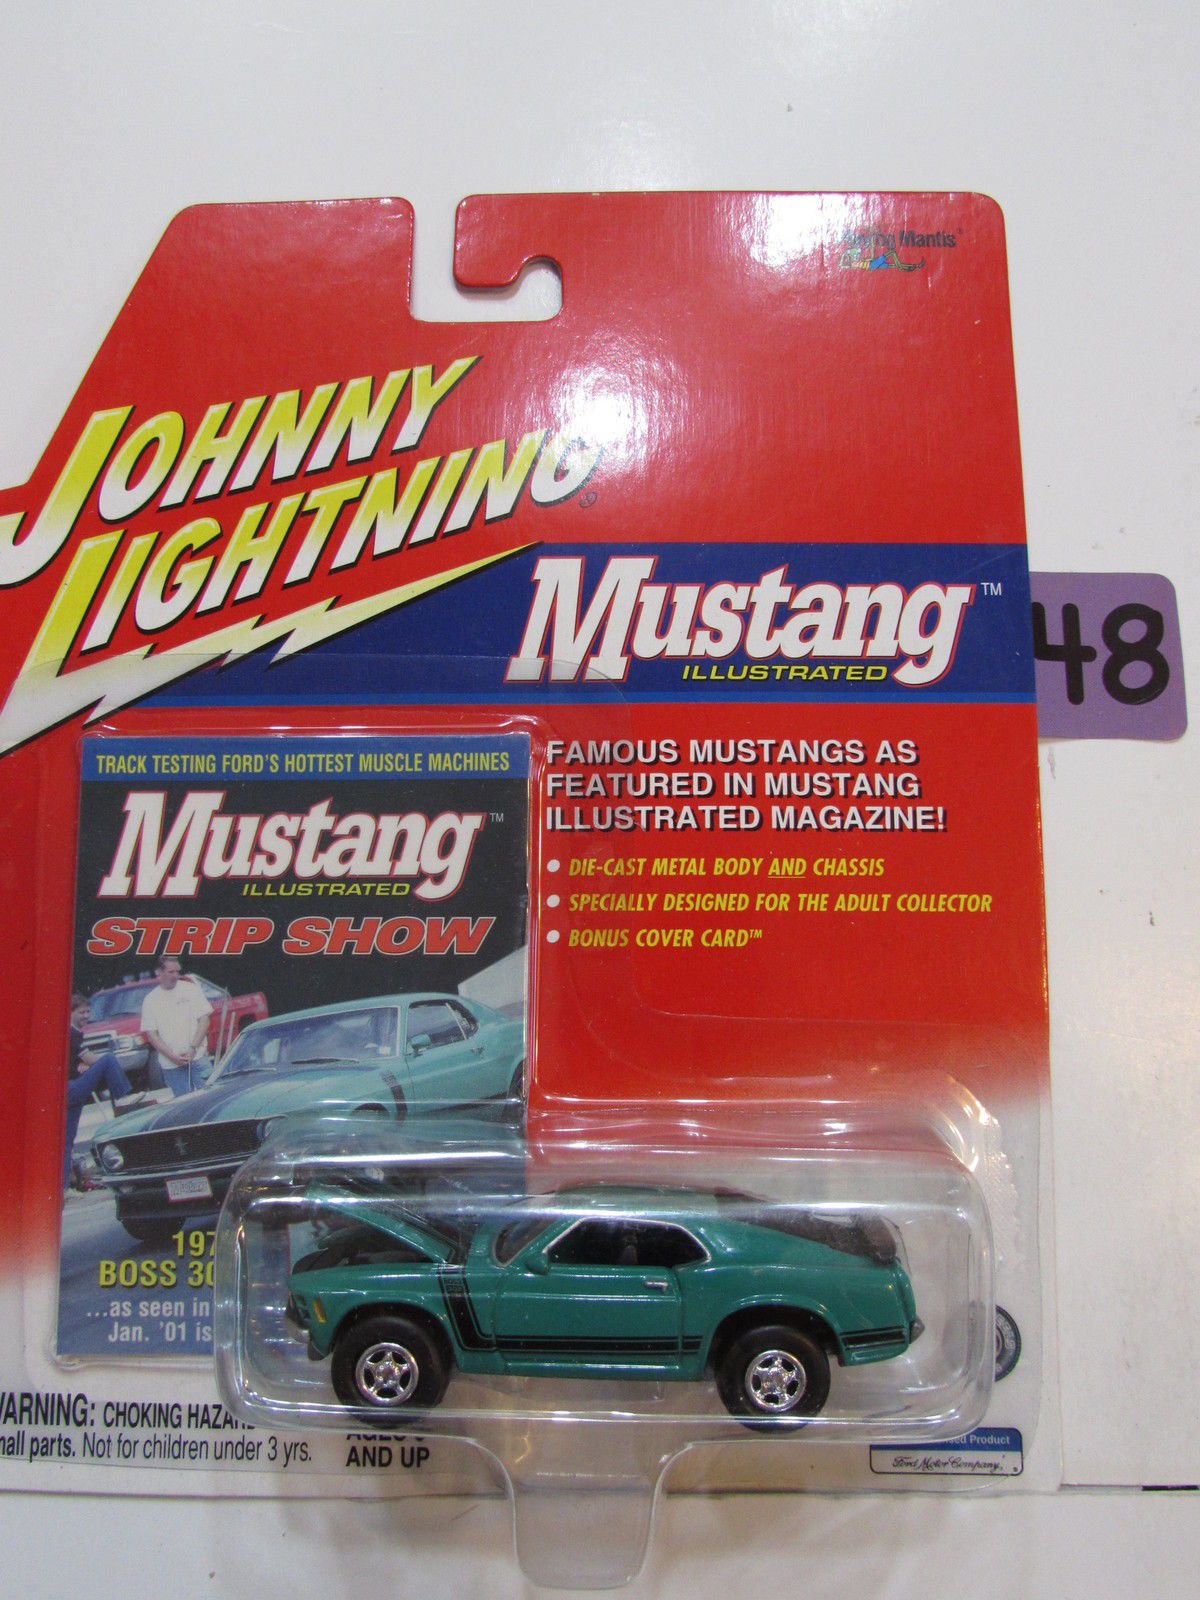 JOHNNY LIGHTNING 2001 MUSTANG - 1970 BOSS 302